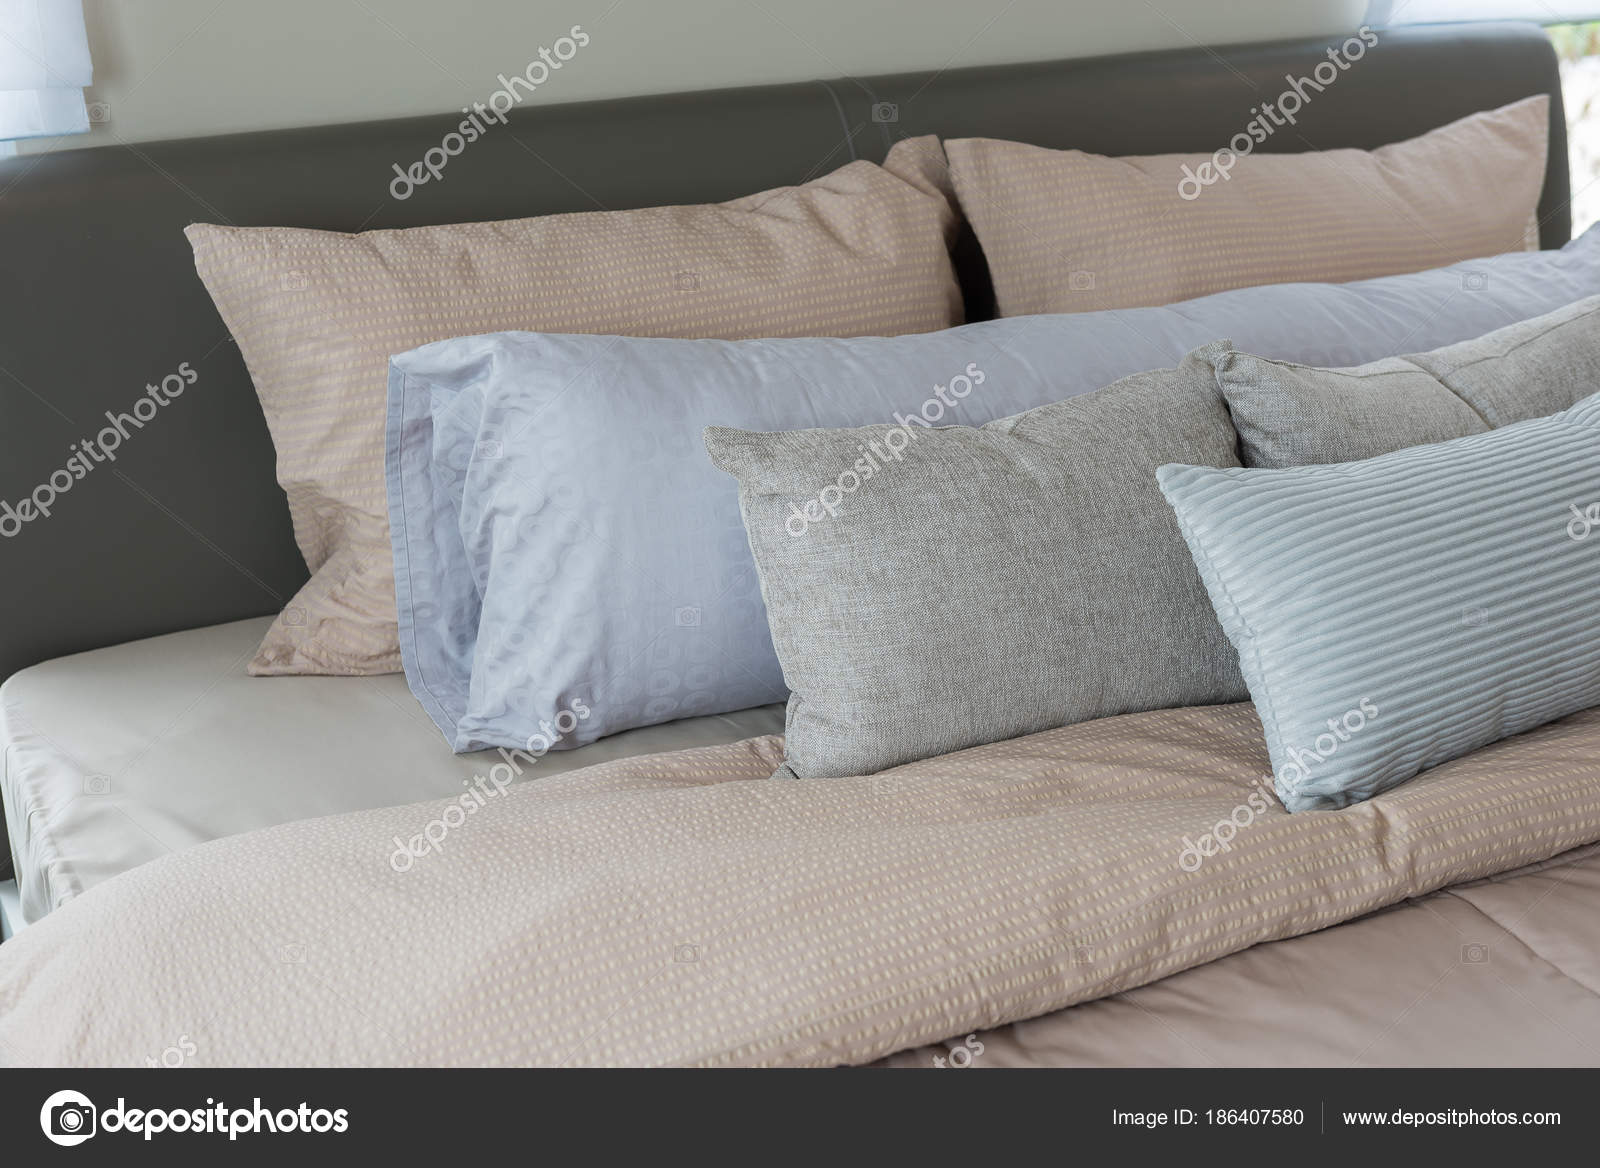 Cuscini Arredo Camera Da Letto.Set Of Pillows On King Bed Size In Luxury Bedroom Stock Photo